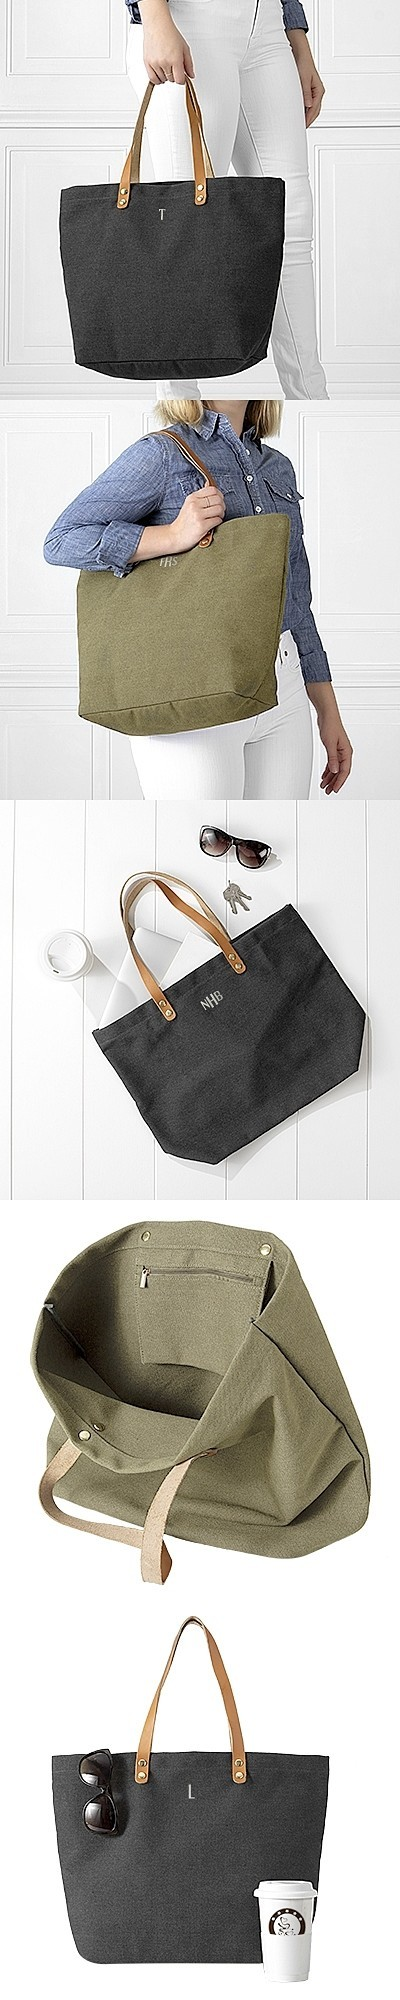 Personalizable Washed Canvas Tote Bag with Leather Handles (2 Colors)